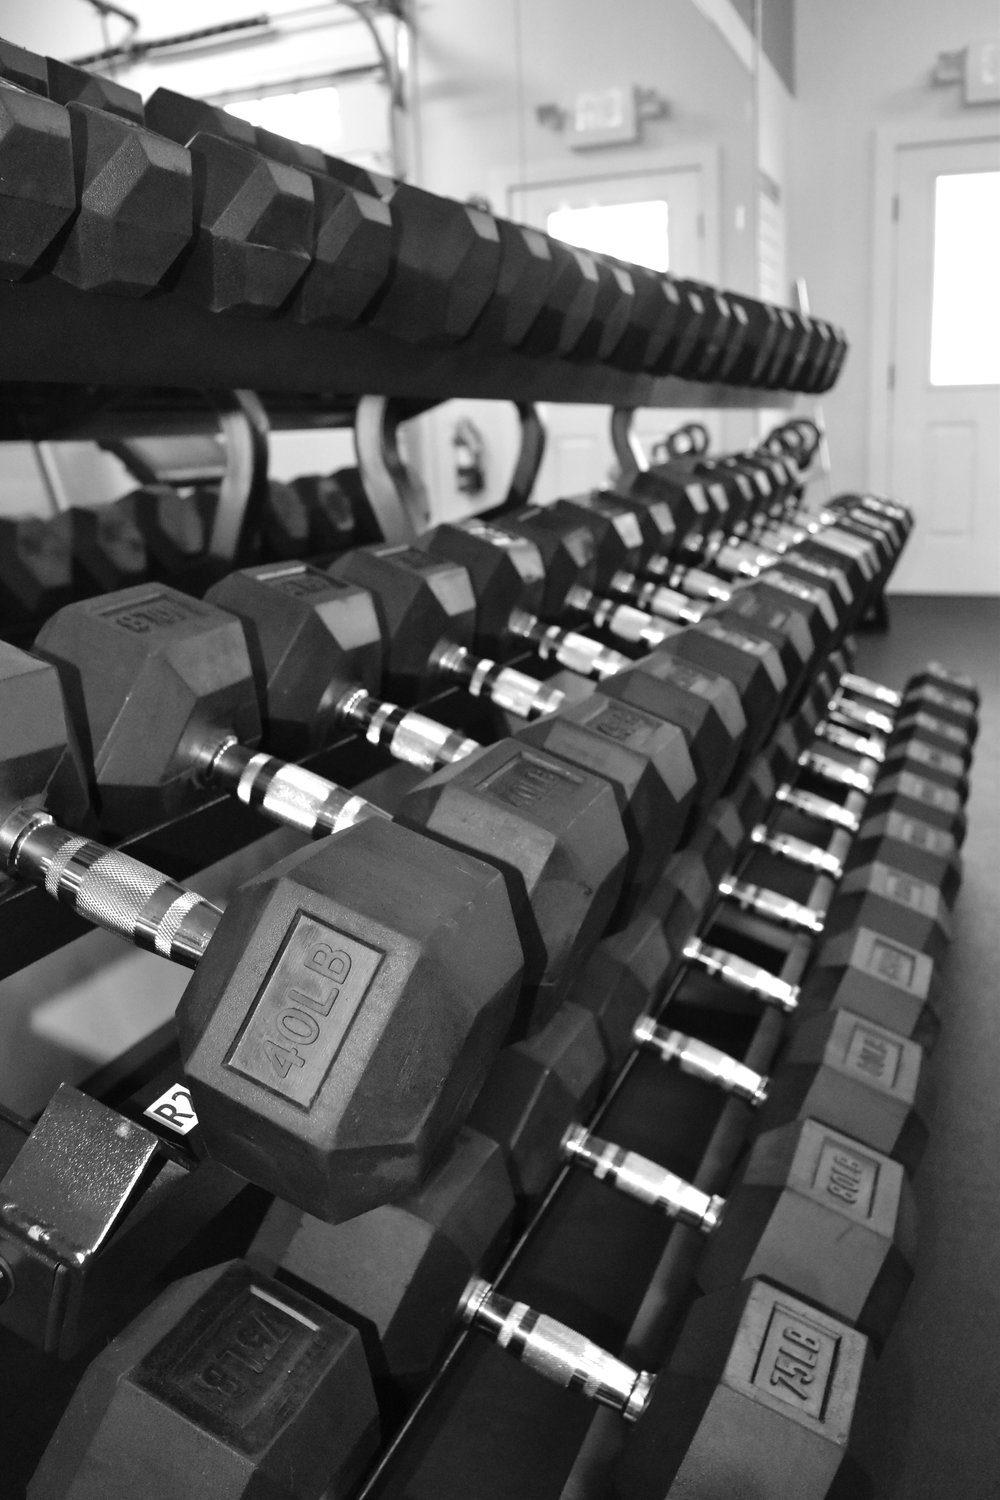 gym weights. free weights. exercise and fitness.JPG